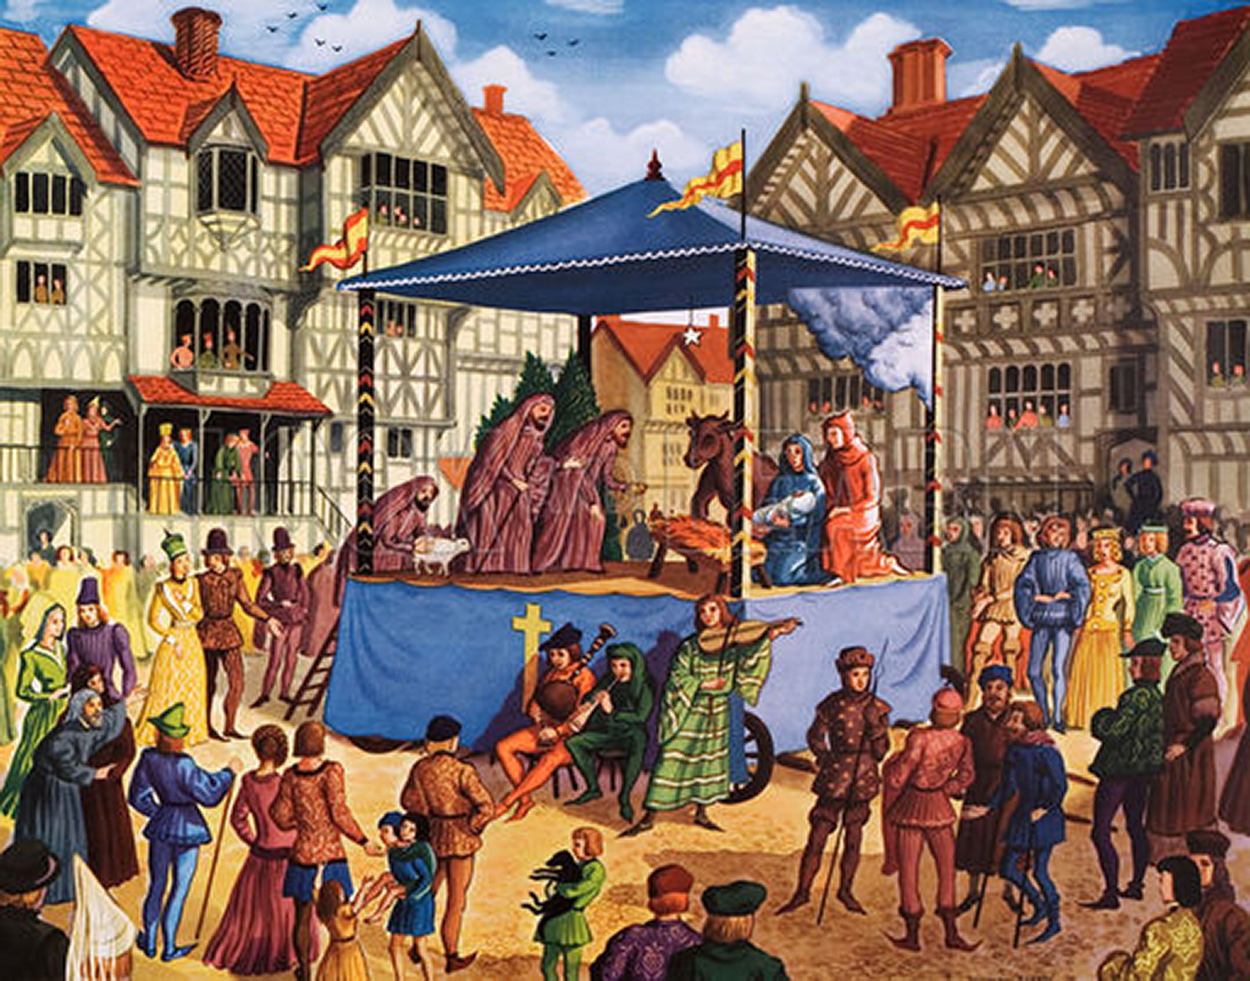 mystery plays The latest tweets from york mystery plays (@yorkmysteryplay) 9th, 12th & 16th september 2018 will see our famous medieval mystery plays, with local performers, taking to the streets on pageant waggons.